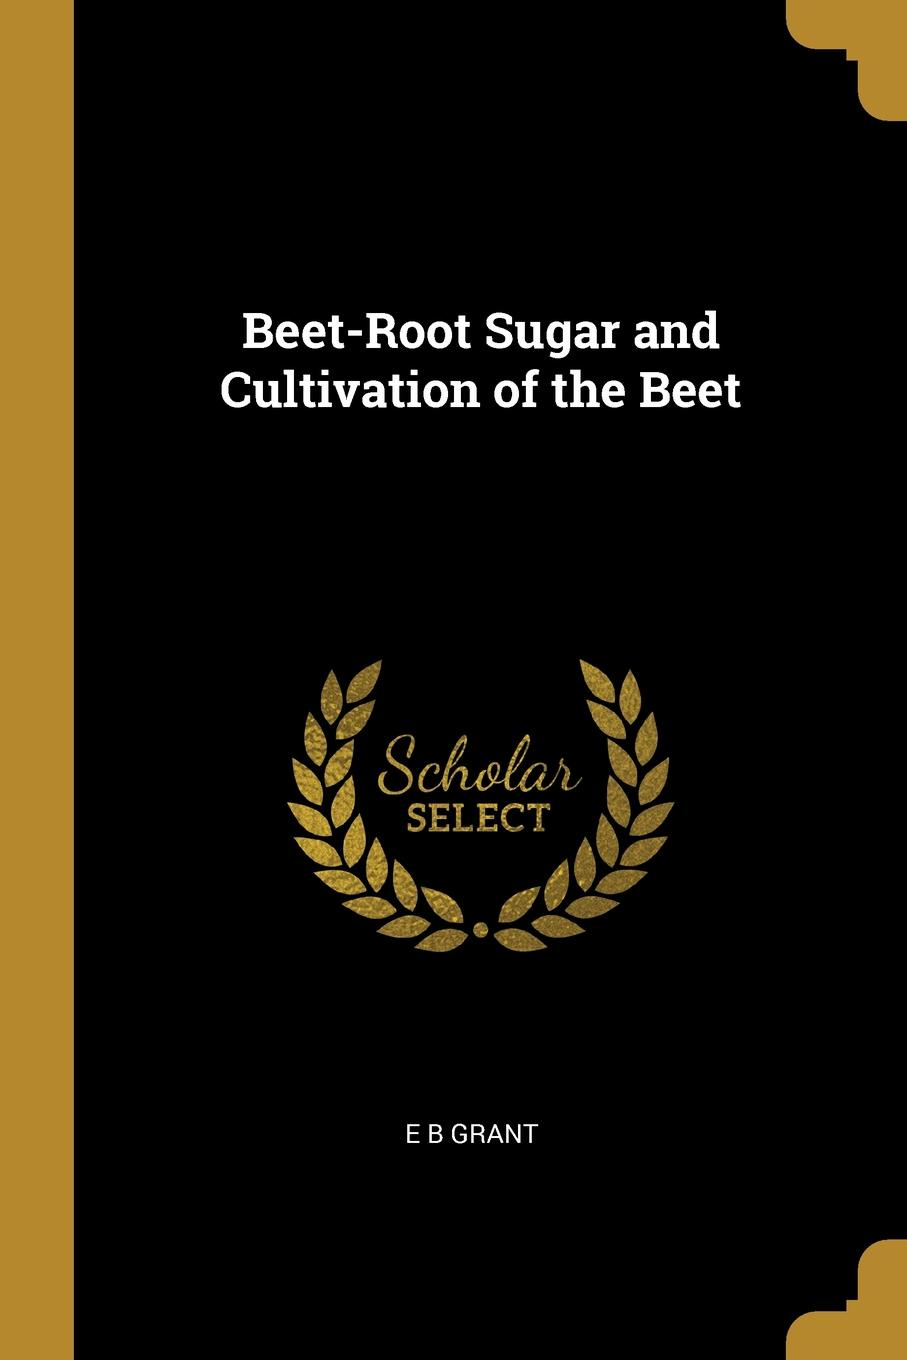 E B Grant Beet-Root Sugar and Cultivation of the Beet